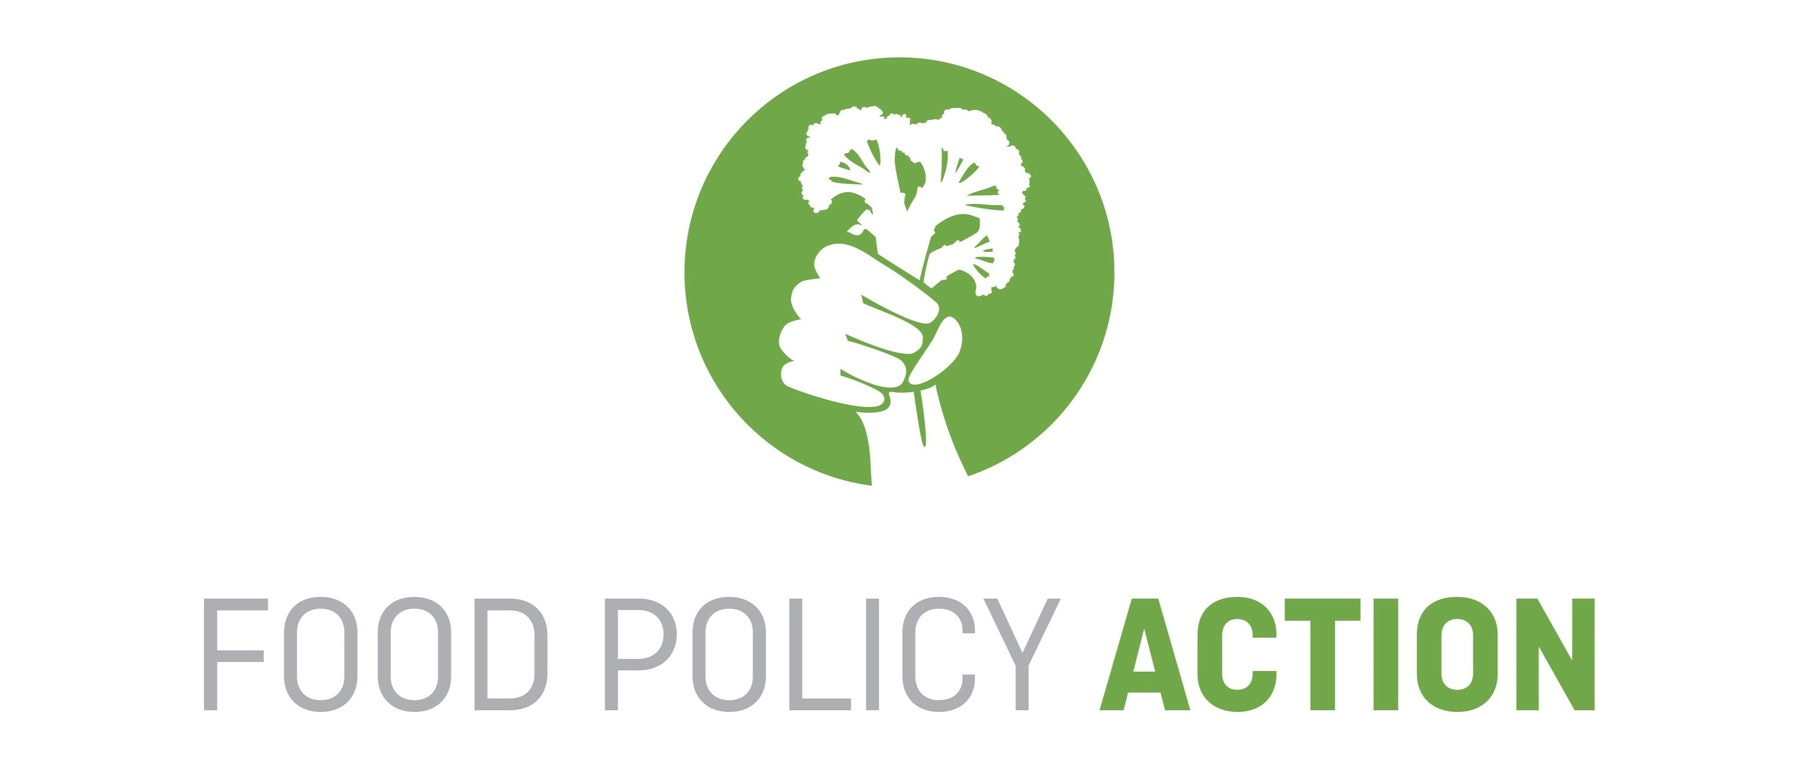 Food Policy Action